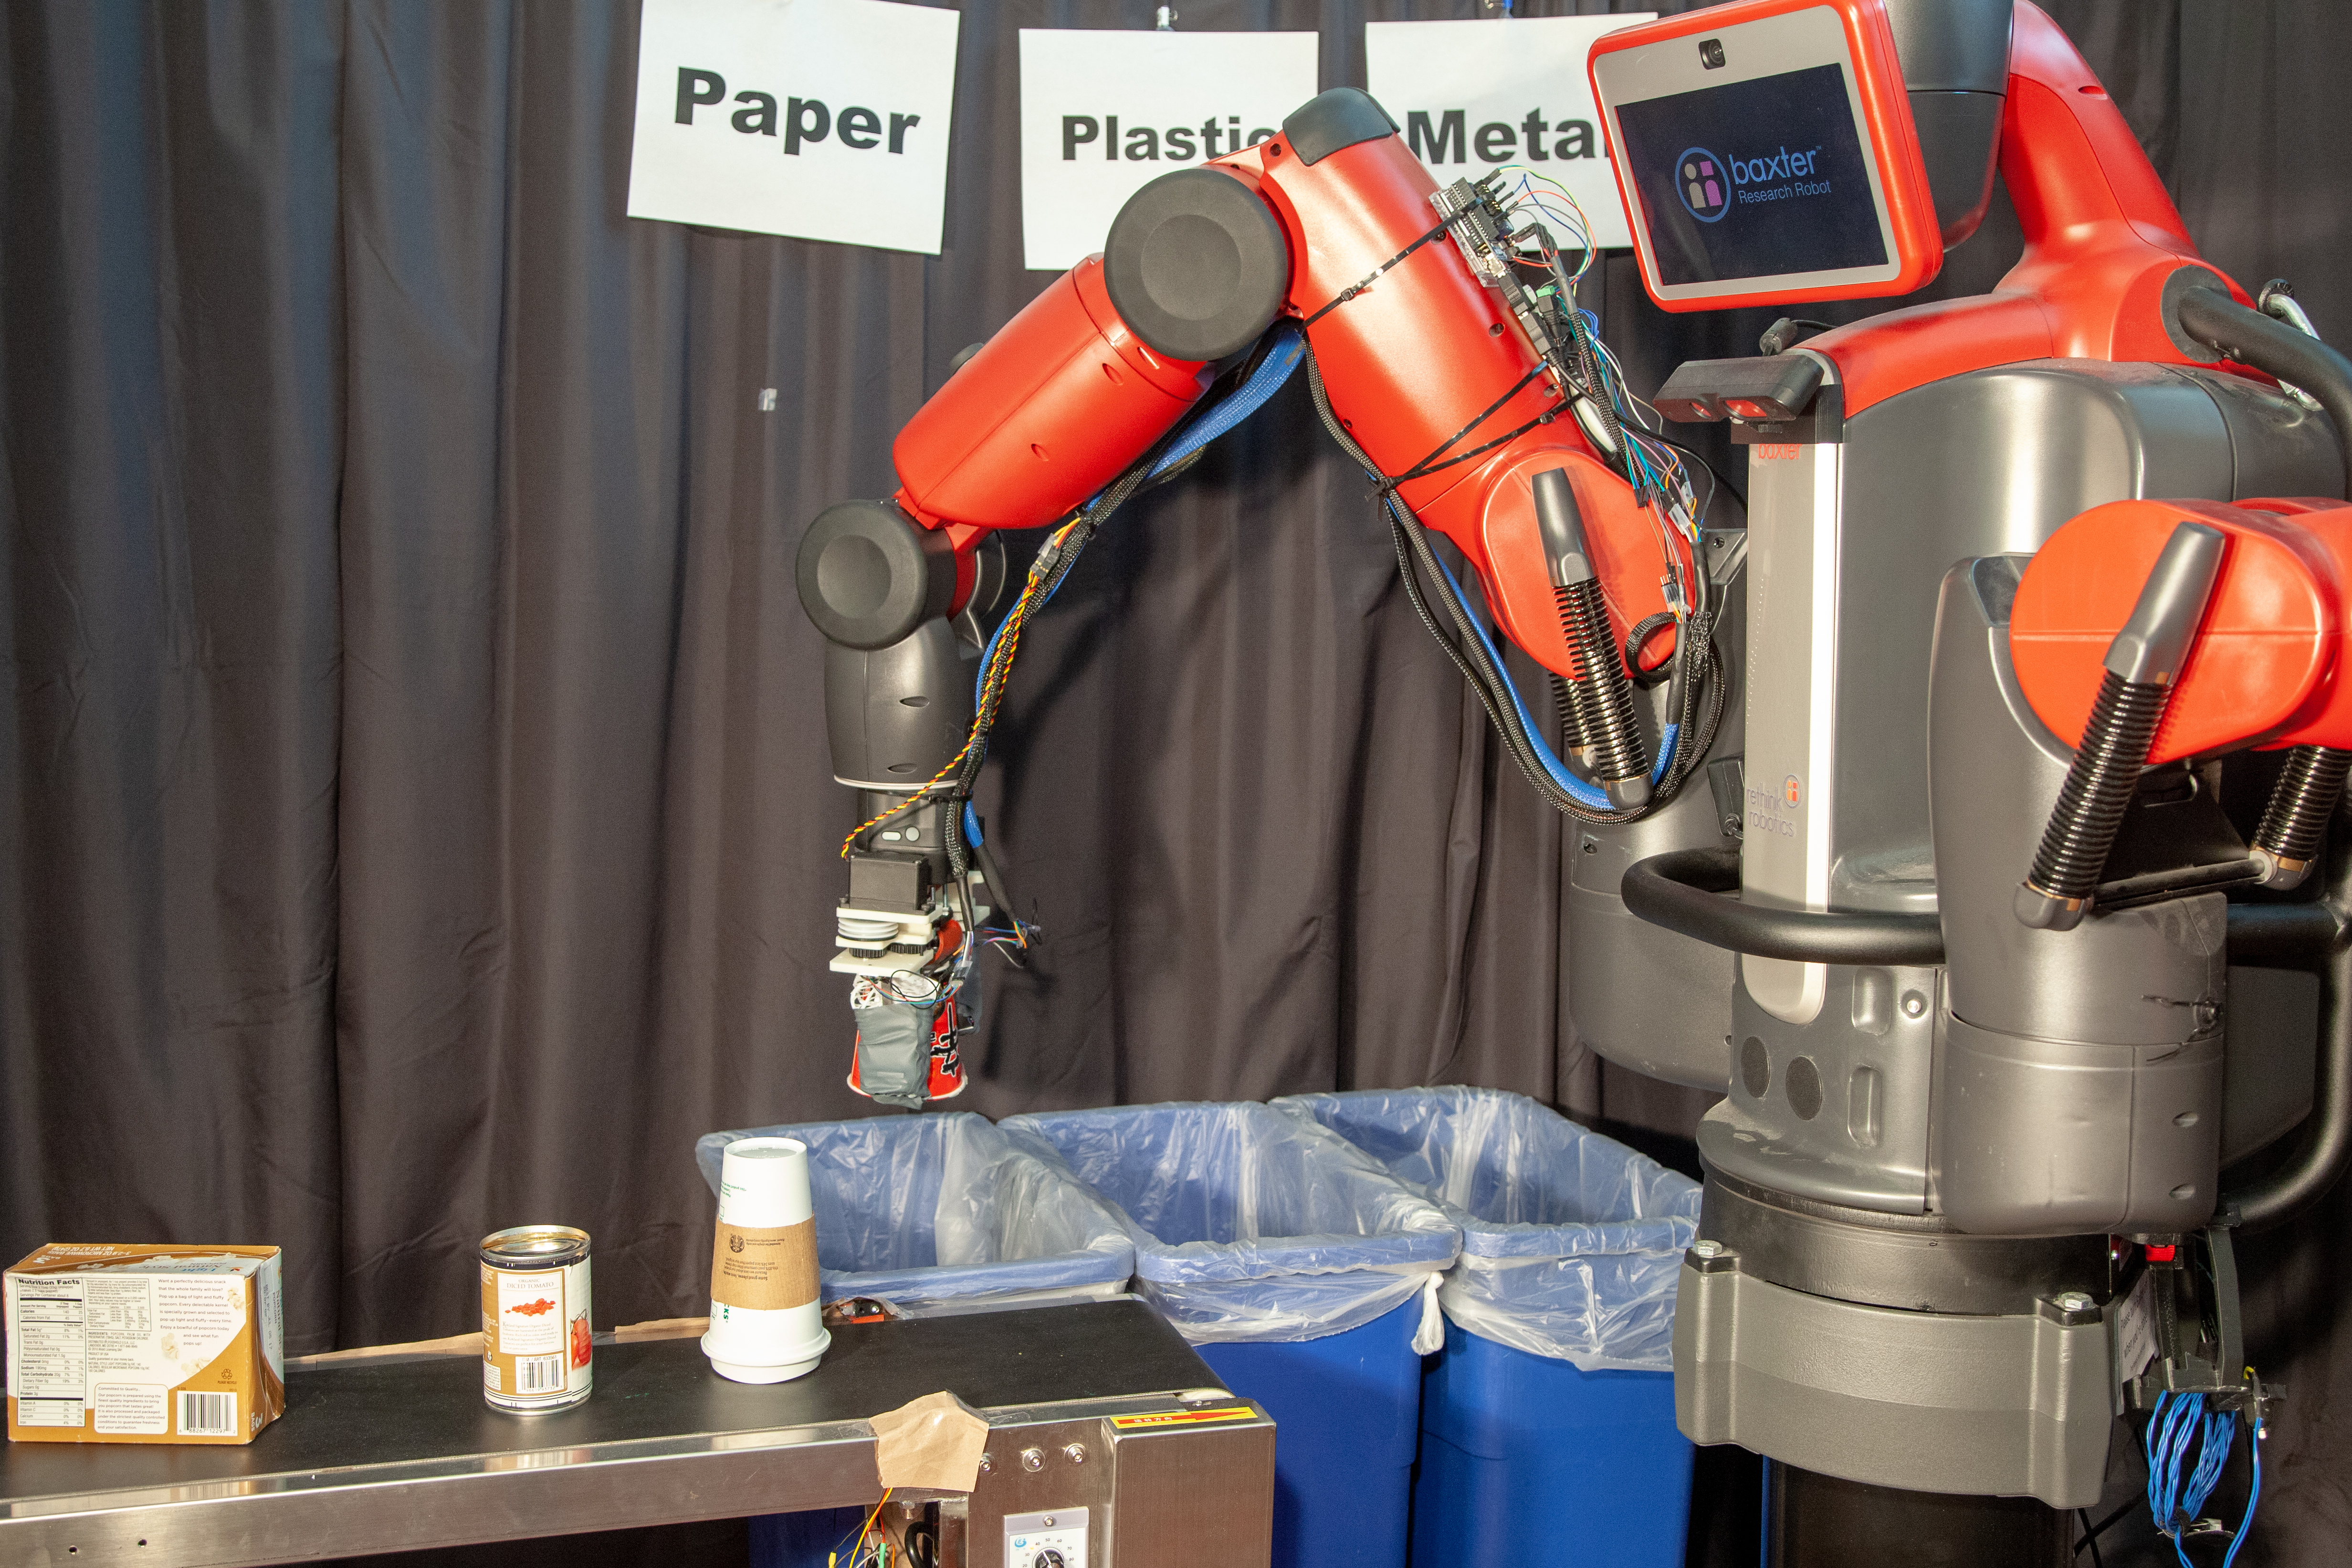 MIT robot sorts recycling and trash by touch | VentureBeat